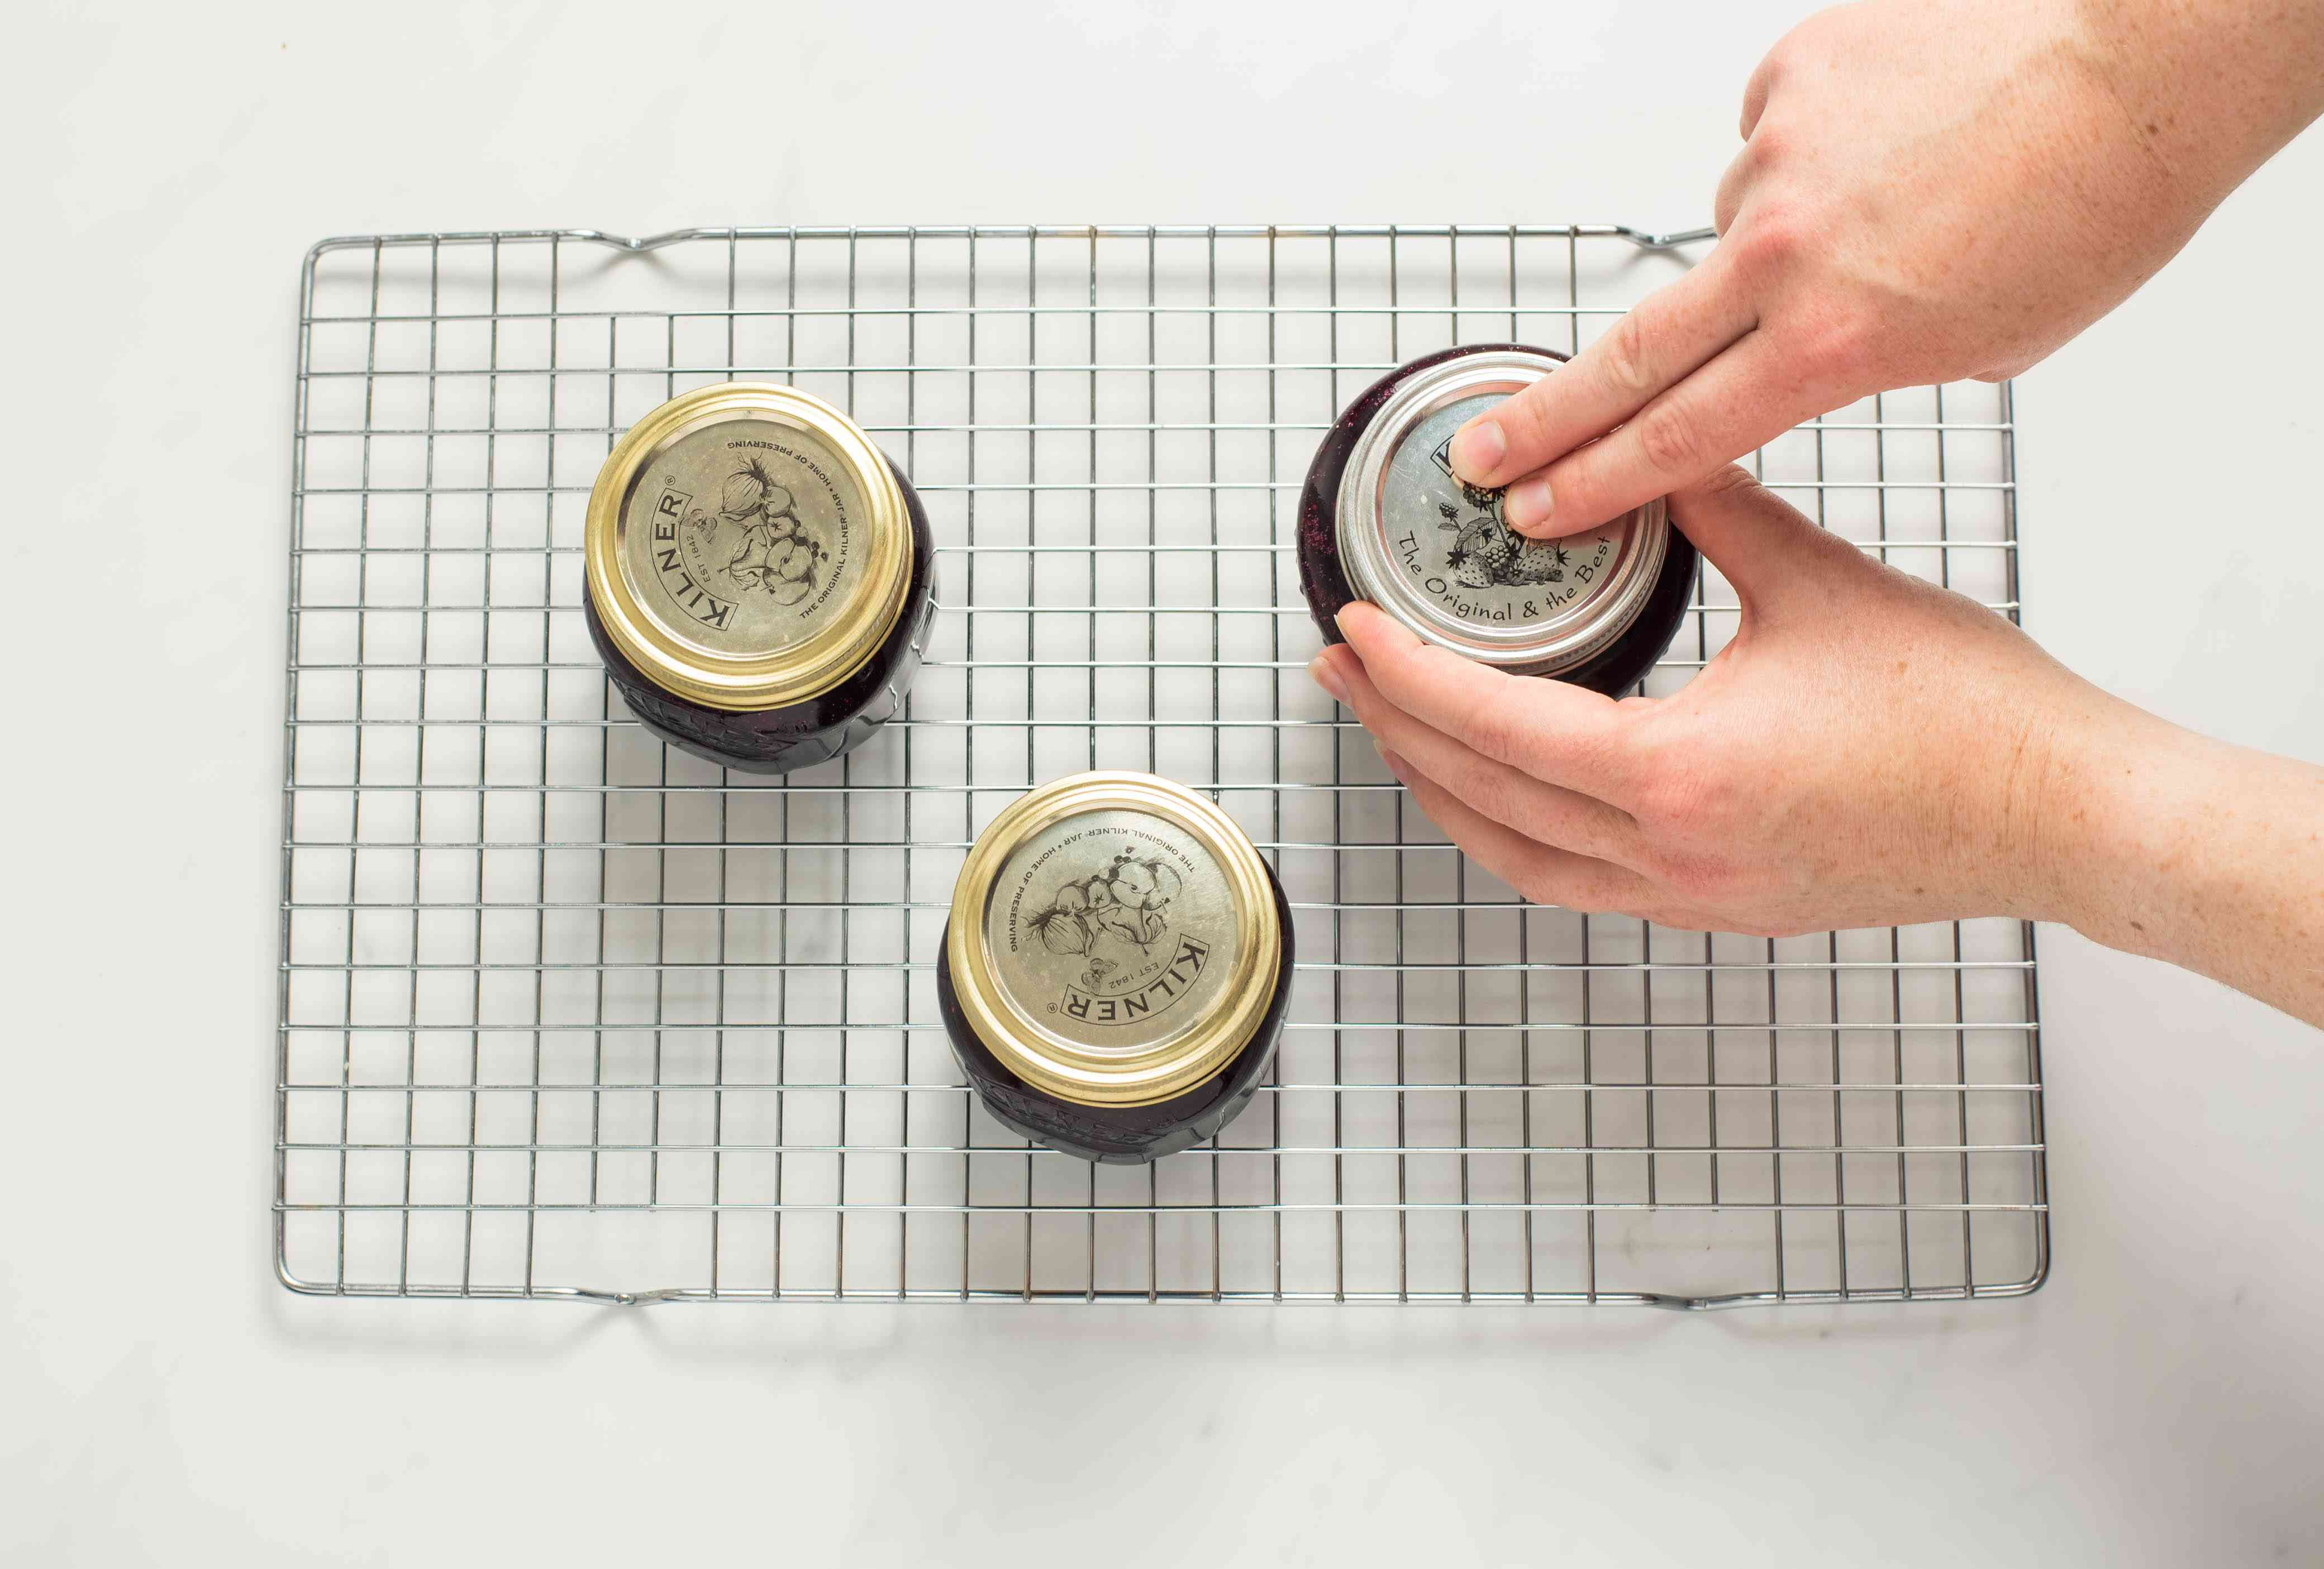 Checking the seals on the jars